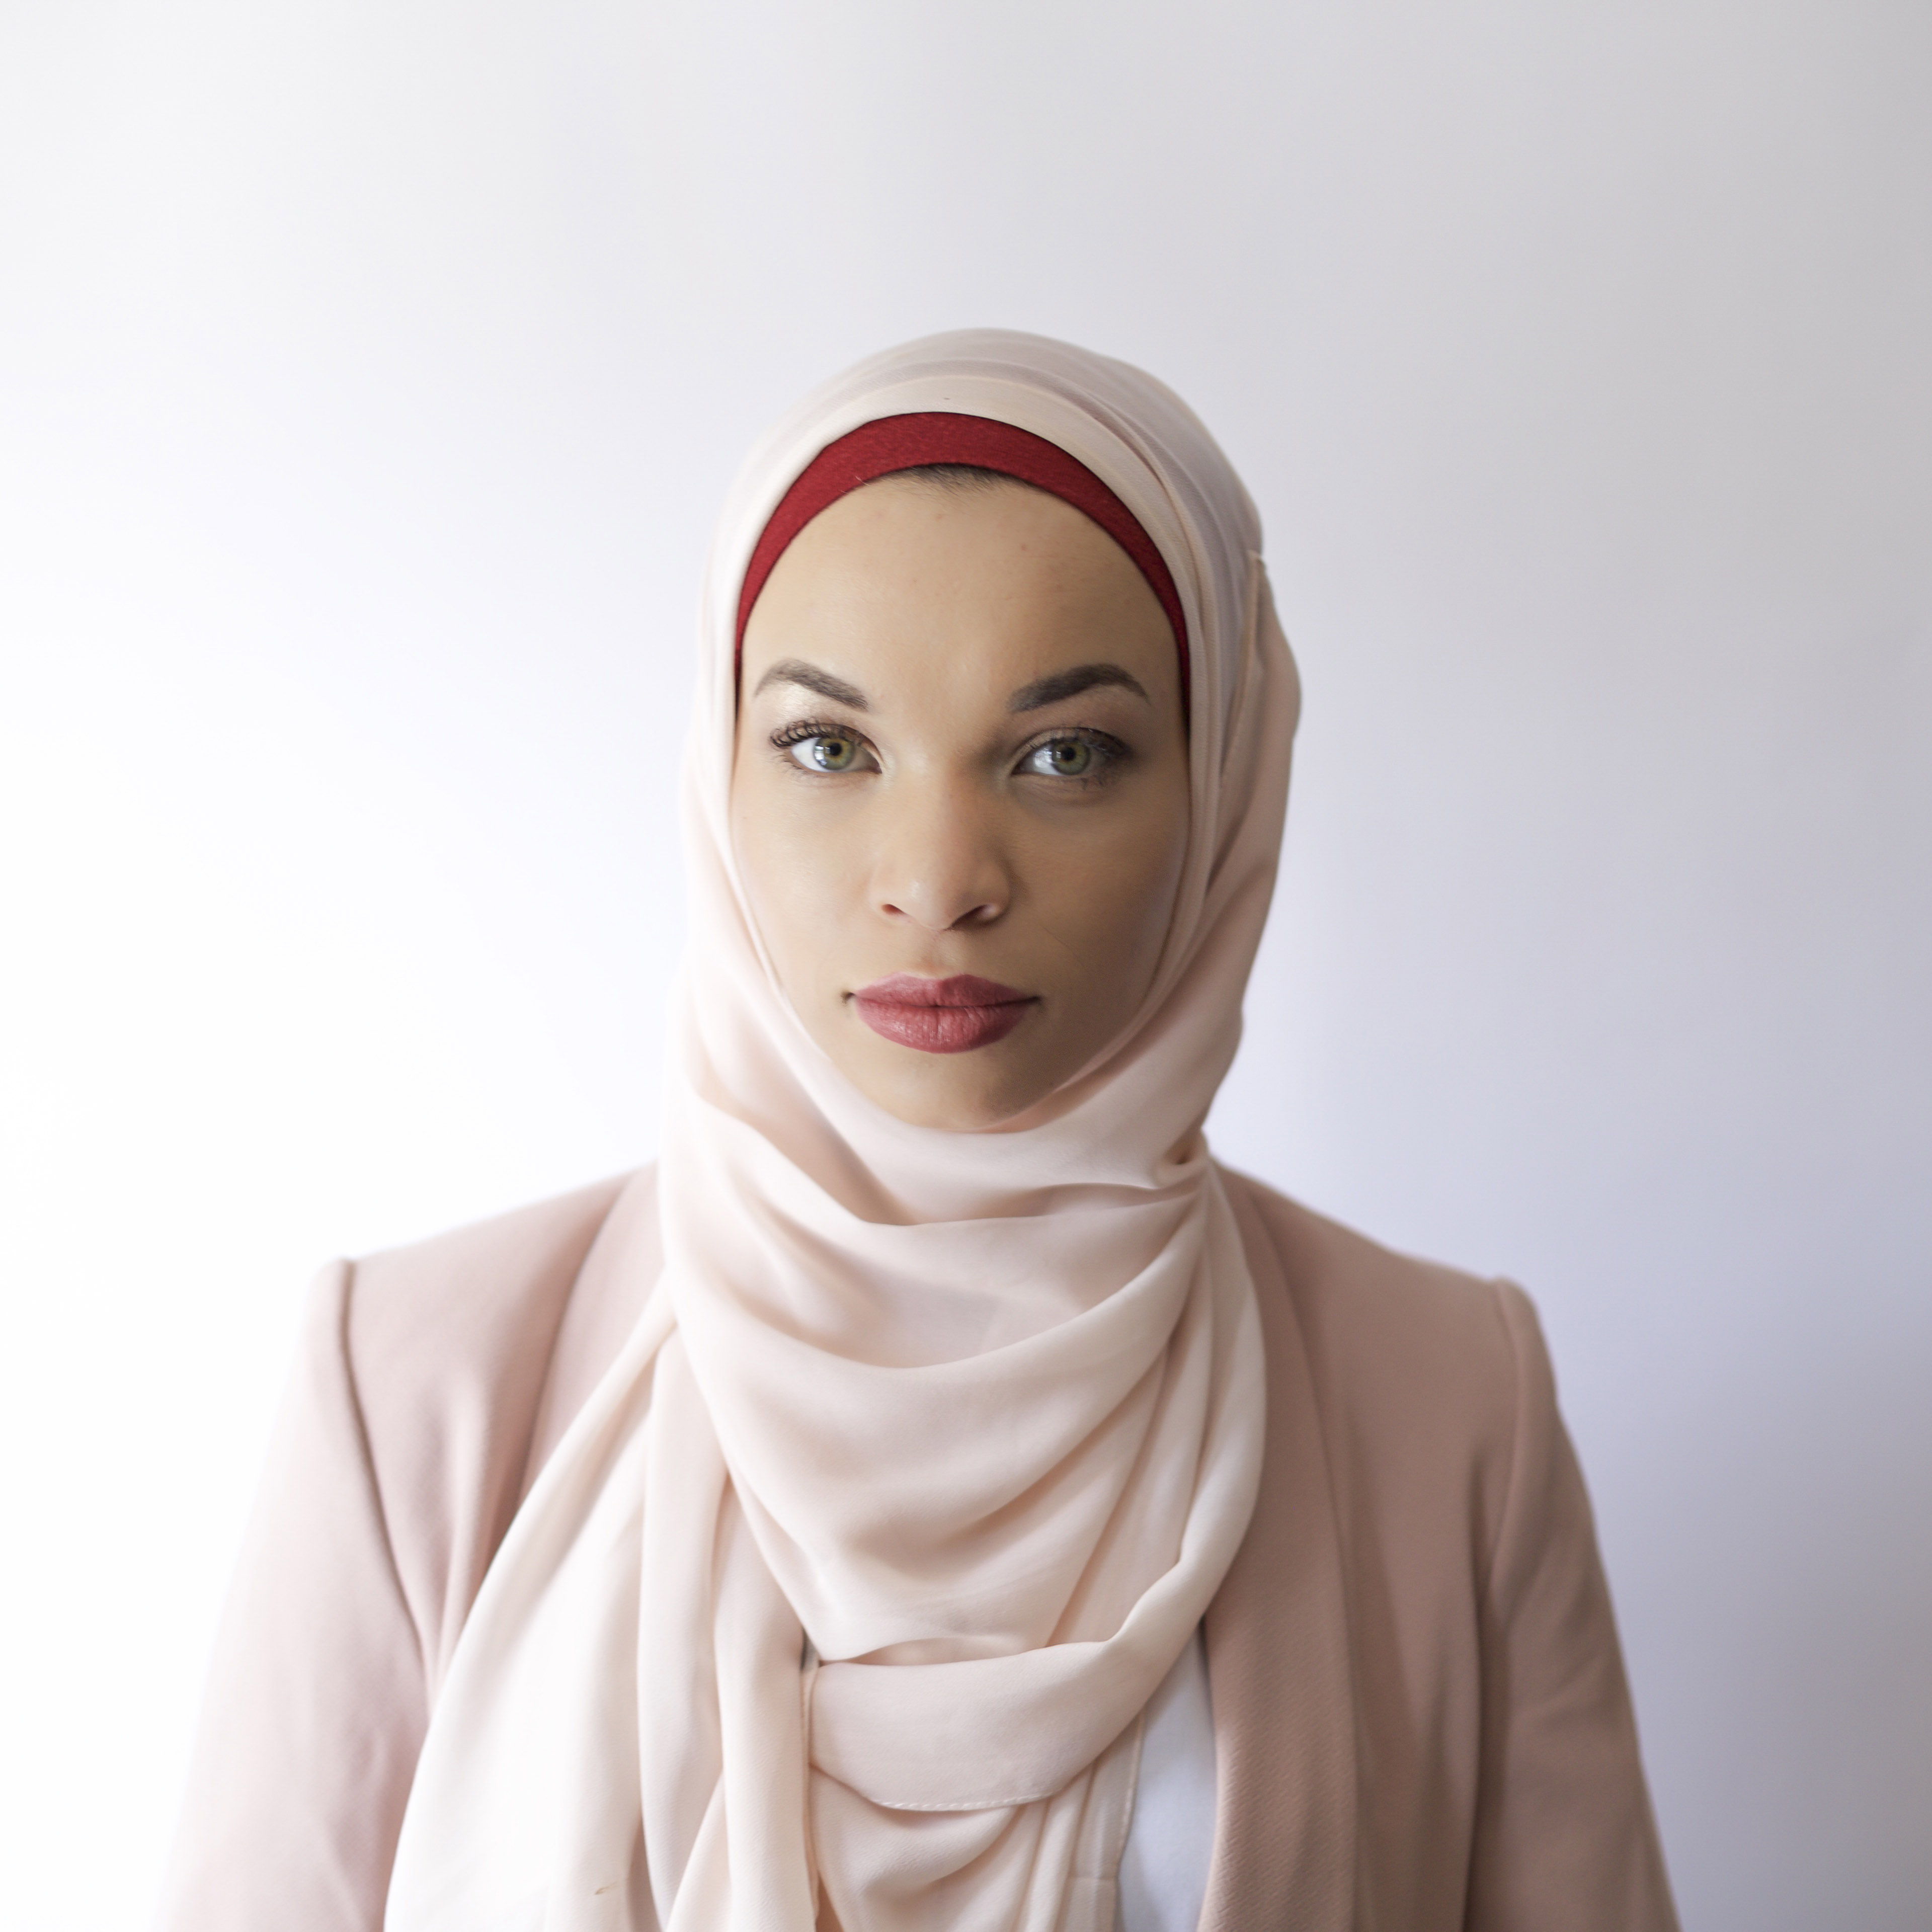 unionville center muslim single women Meet divorced pakistani women for marriage  i am not going to praise her simply because she is my sister,but being a muslim and honestly  friendship dating.